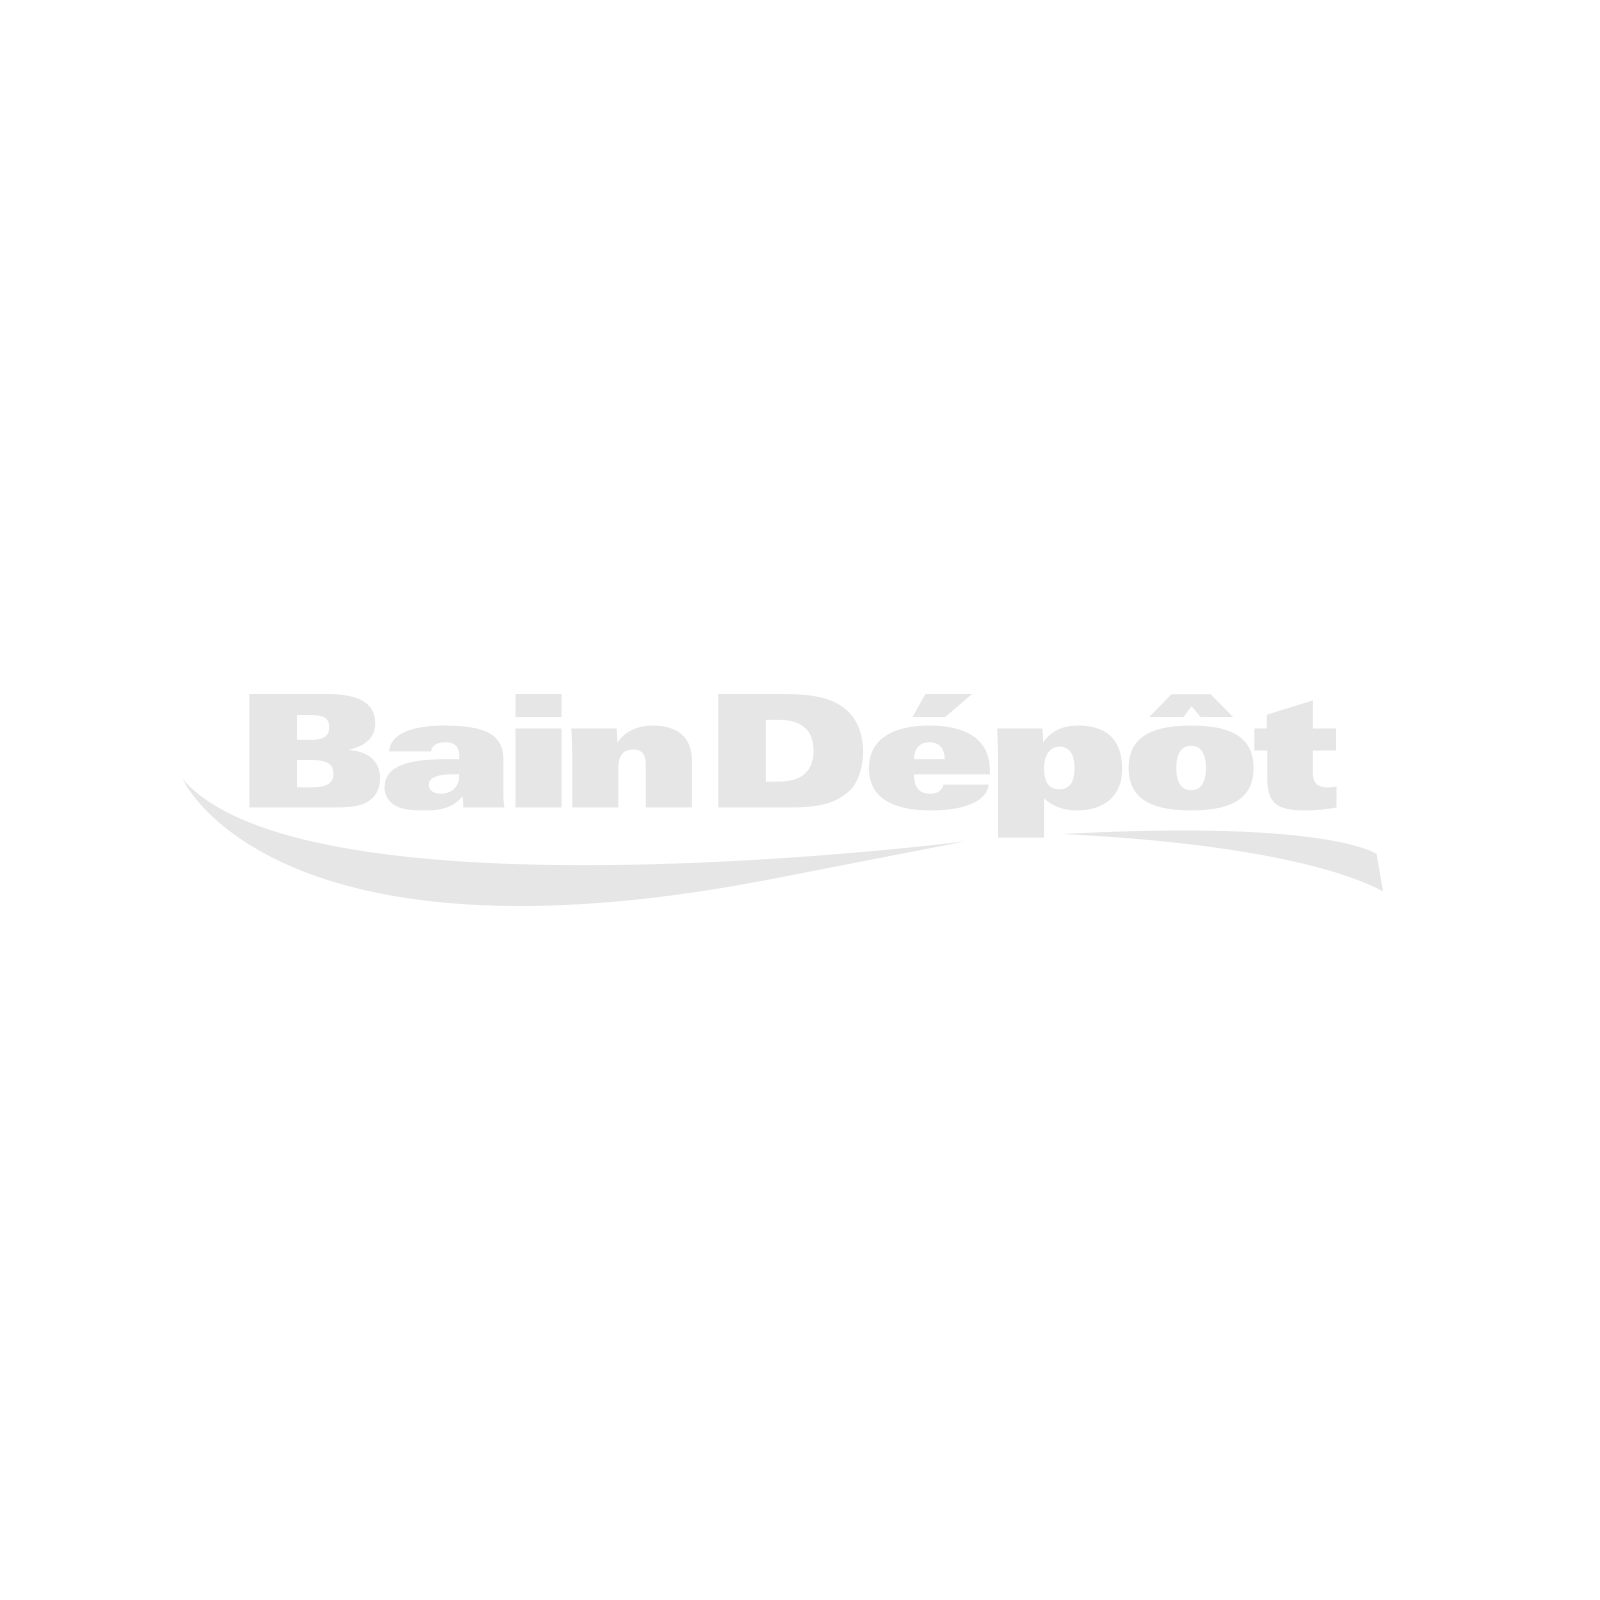 "Single undermount kitchen sink 15"" x 18"""